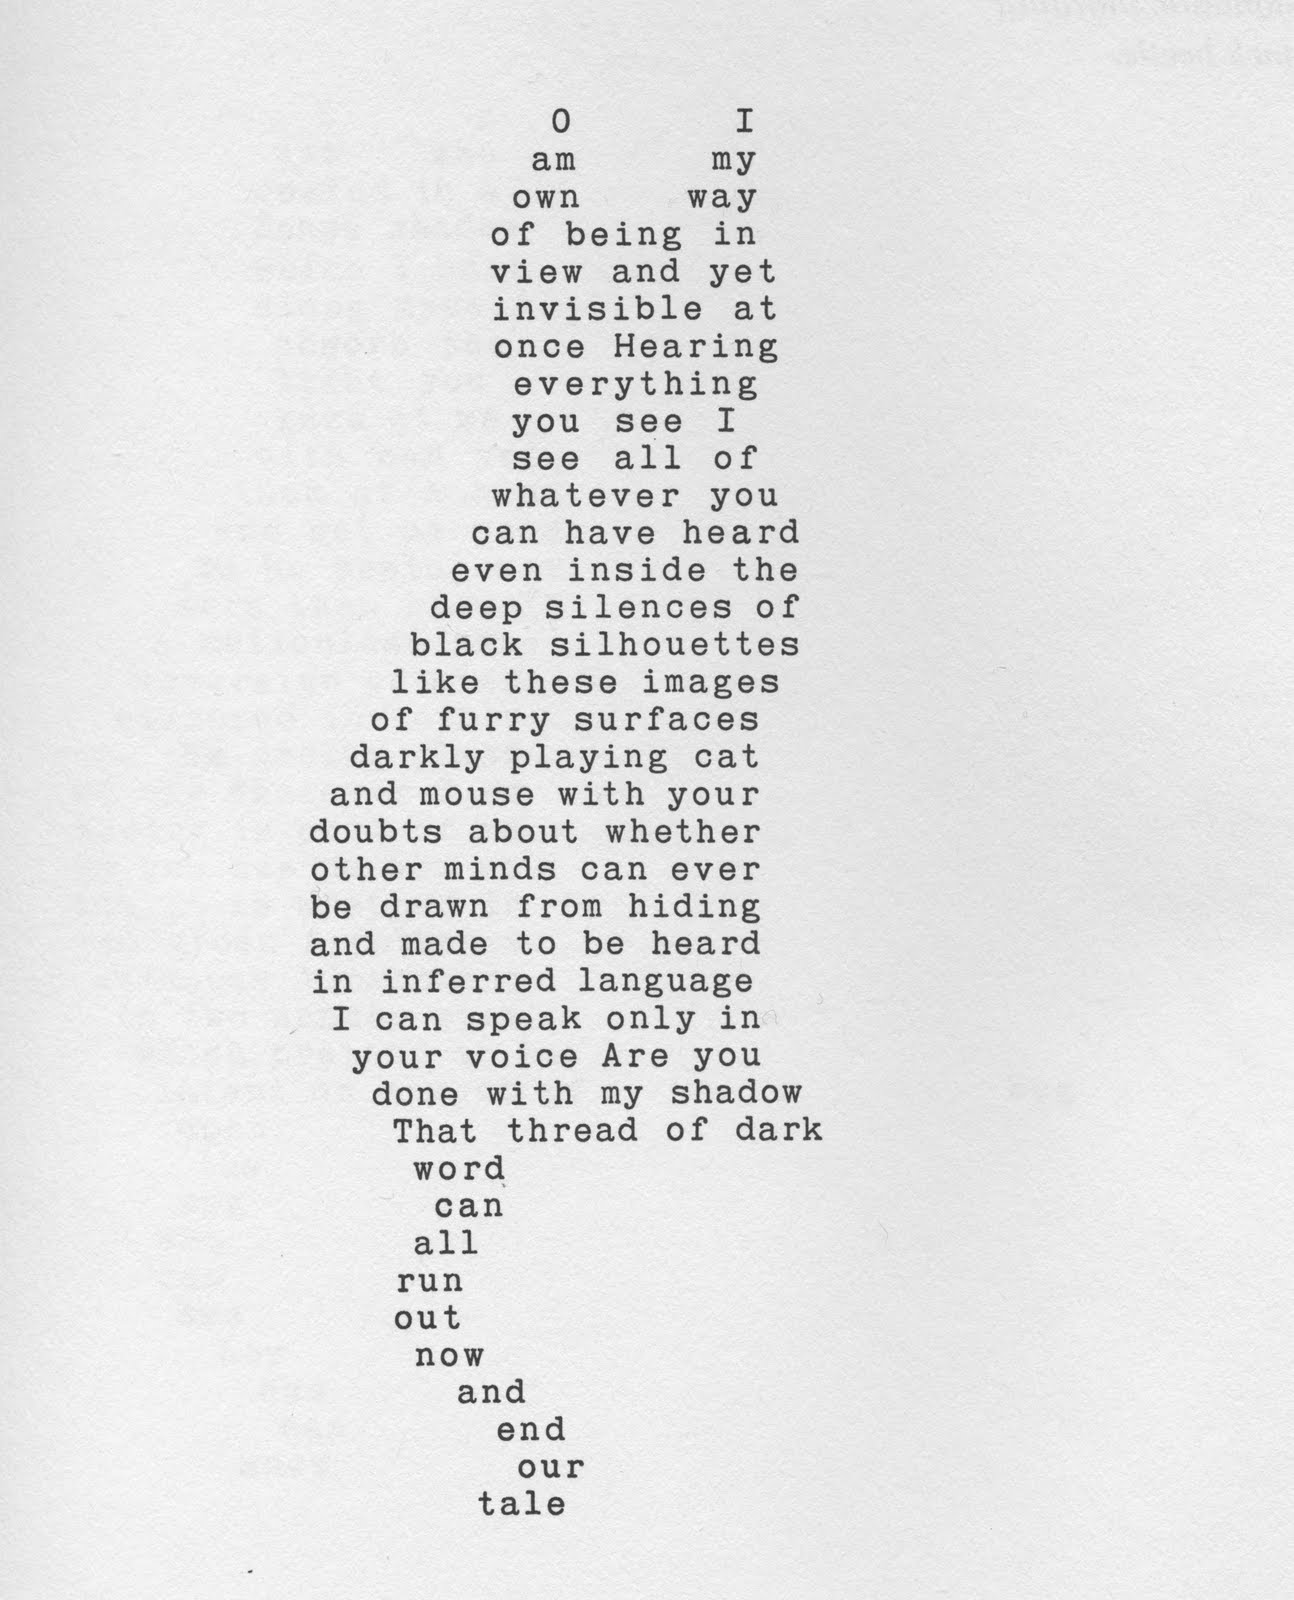 Attempts: John Hollander's Shaped Poems (Accidental Poetry Month ...